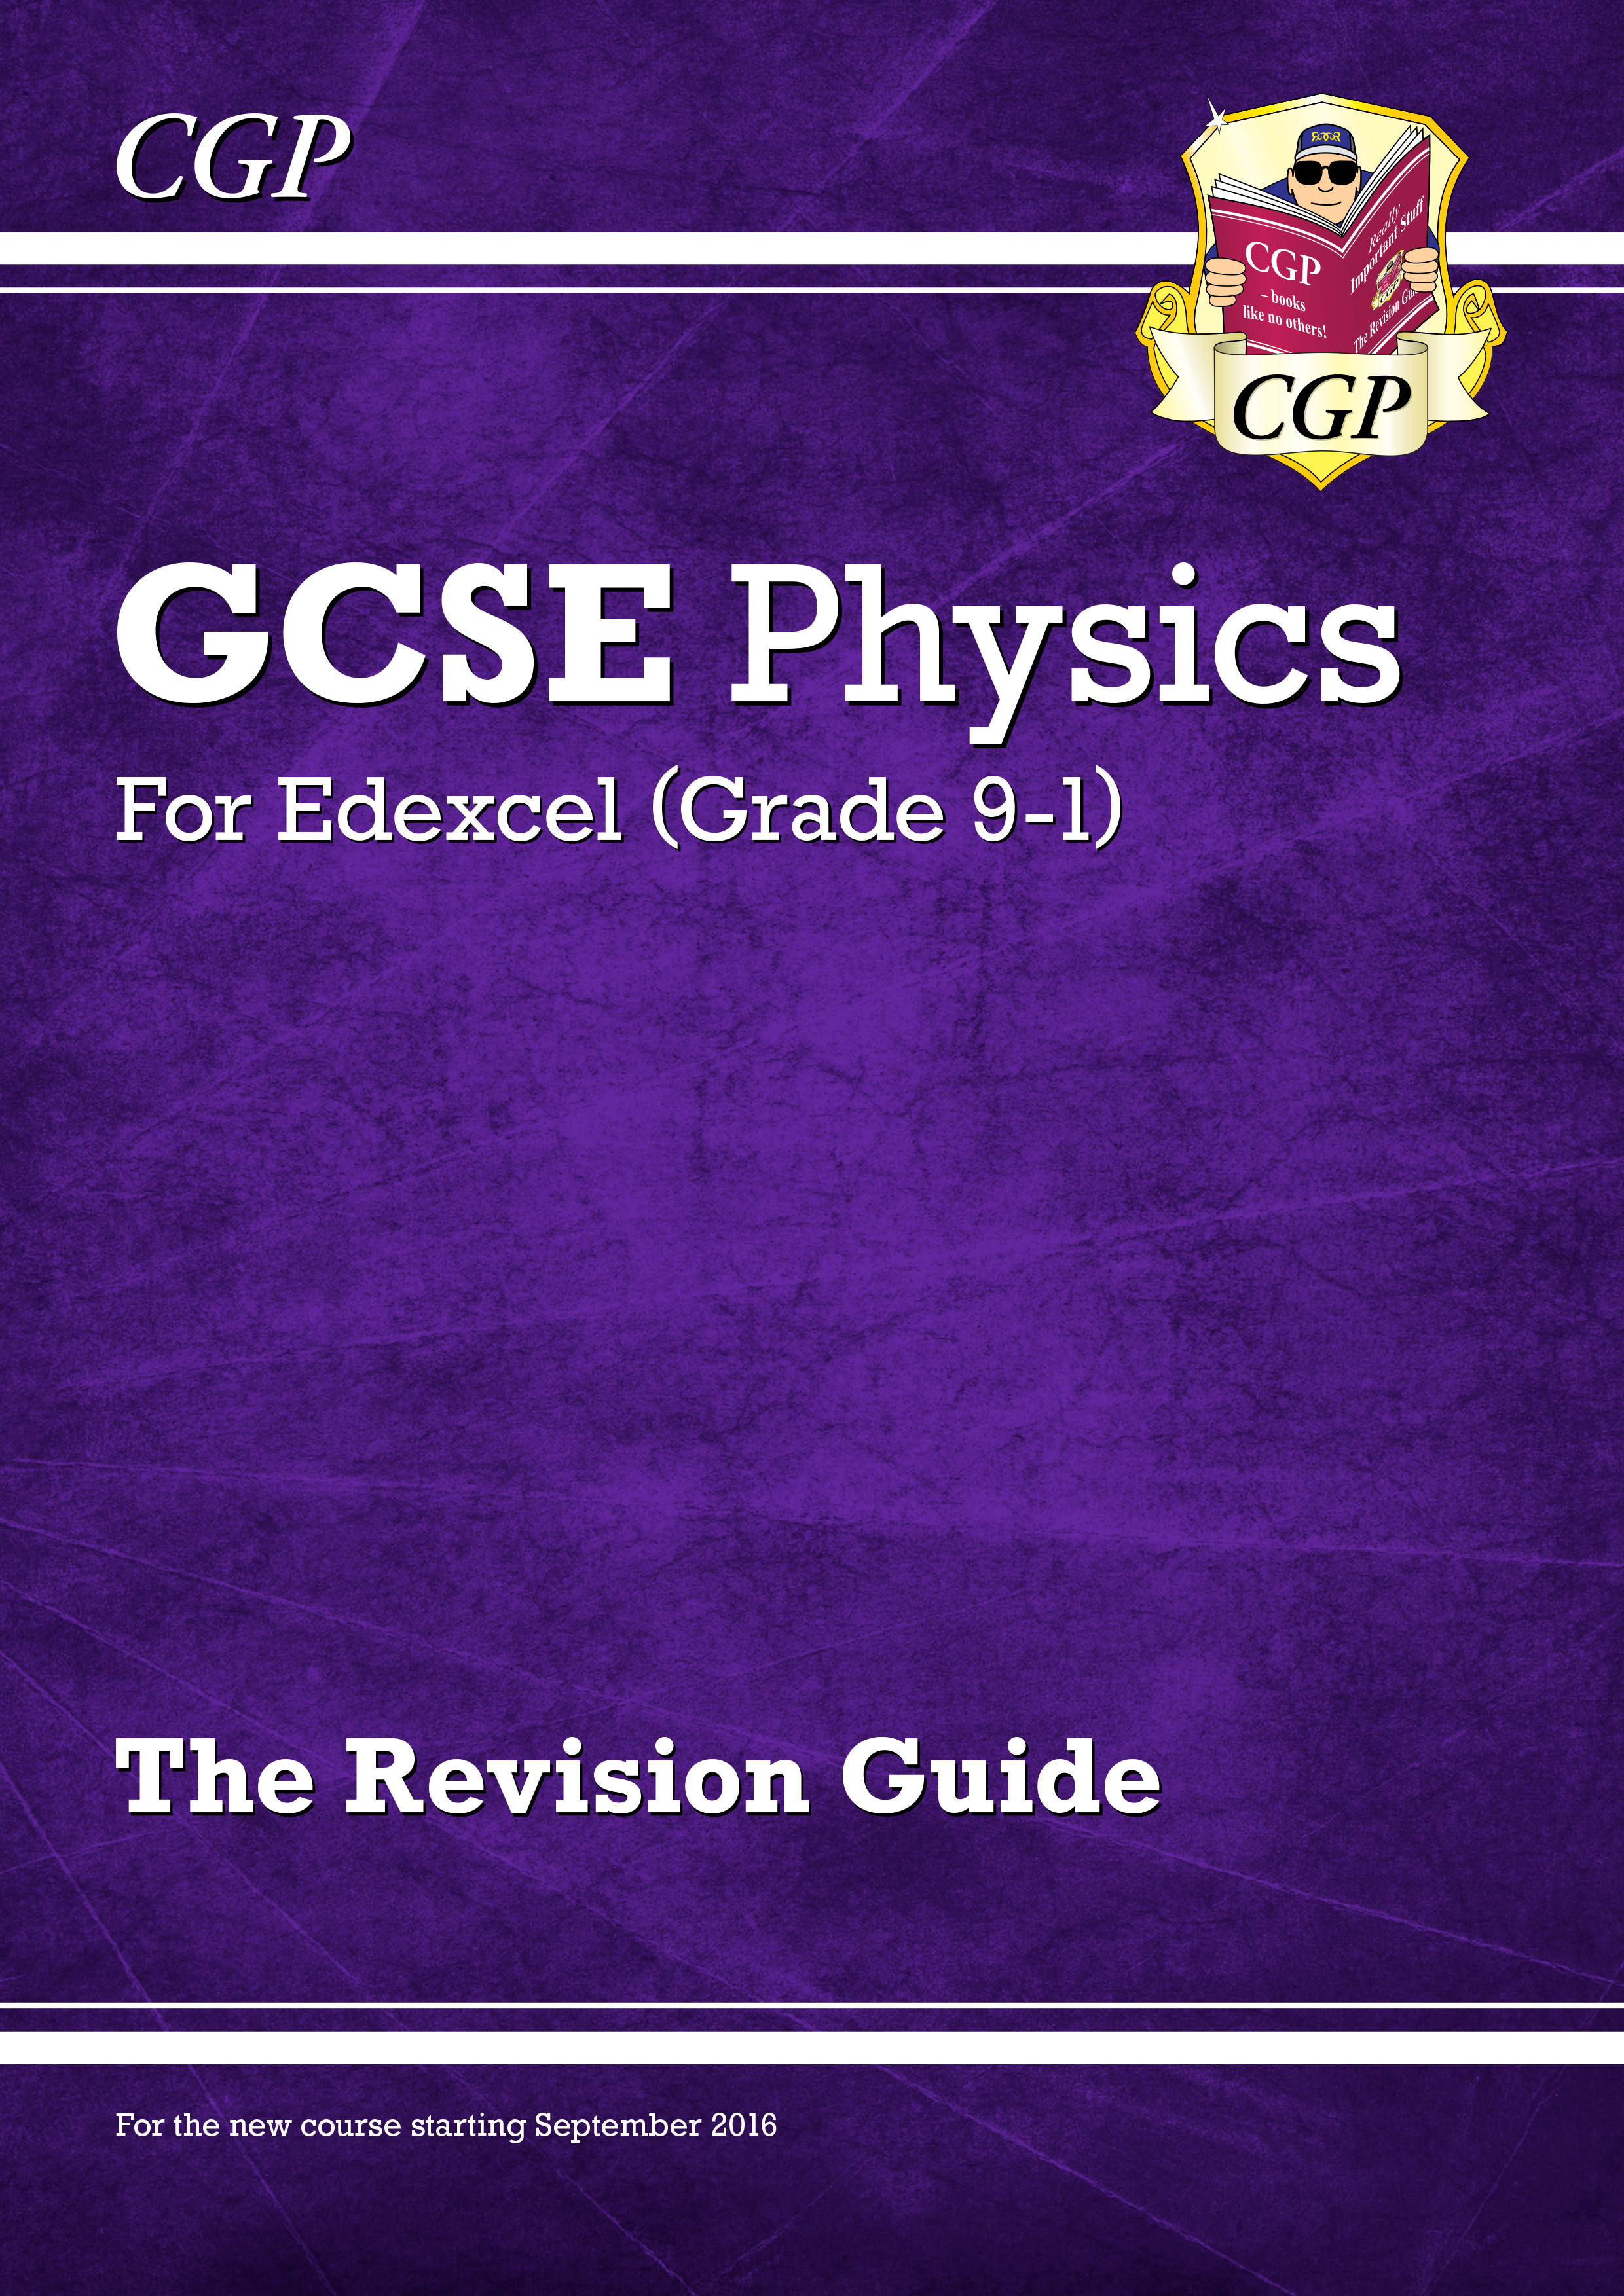 PER45DK - New Grade 9-1 GCSE Physics: Edexcel Revision Guide